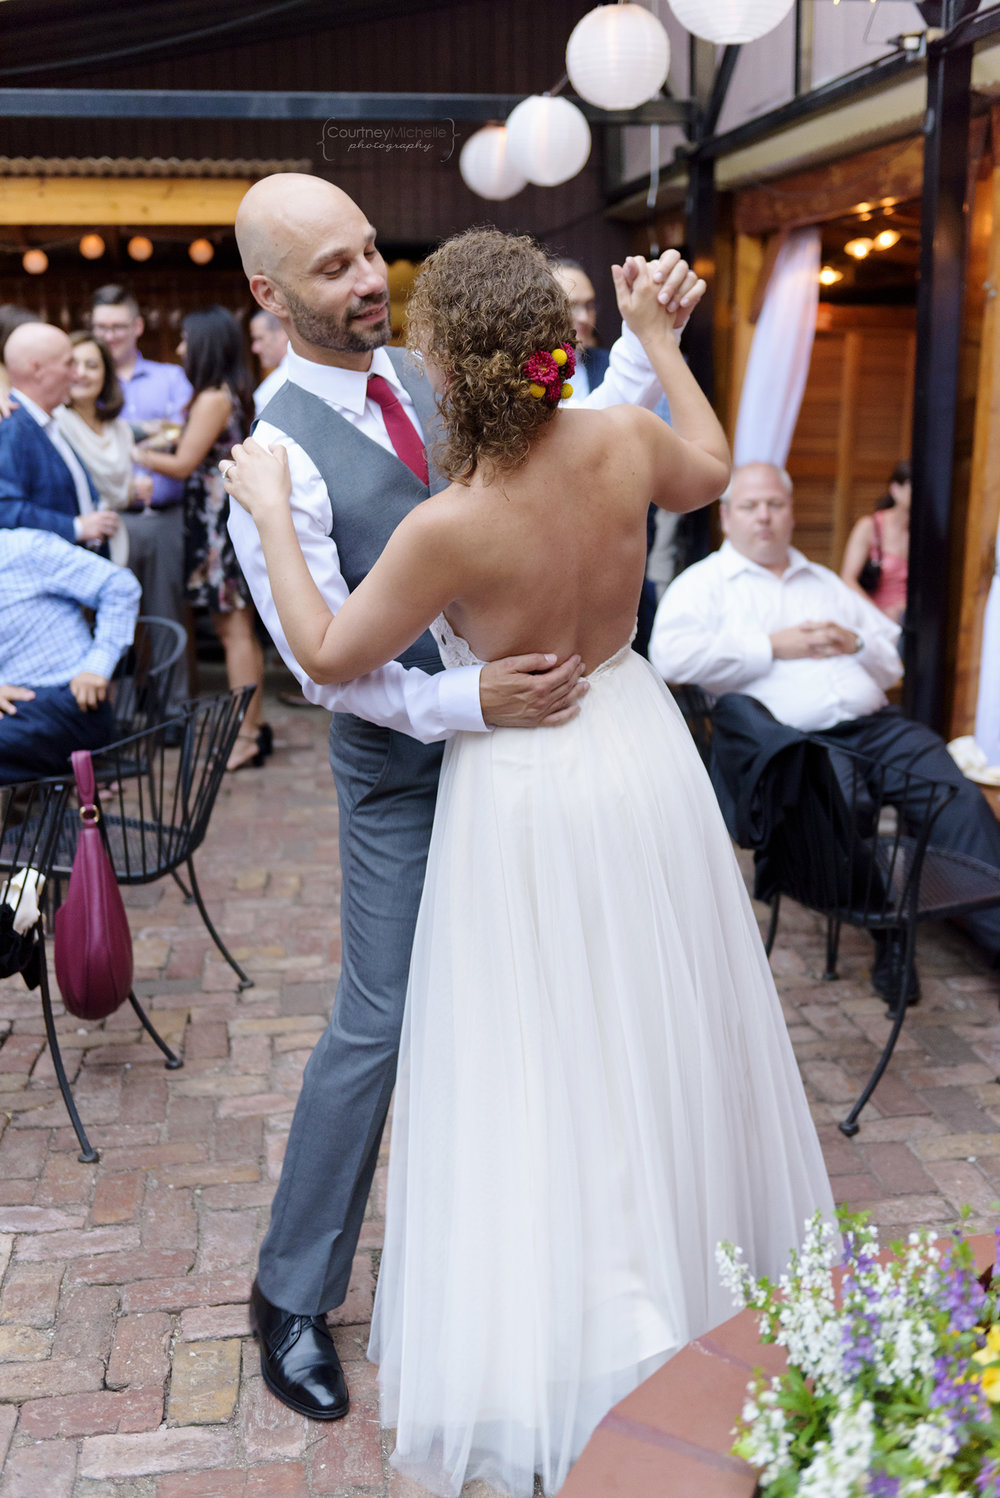 volo-patio-chicago-wedding-first-dance©COPYRIGHTCMP-_DSC5345edit.jpg